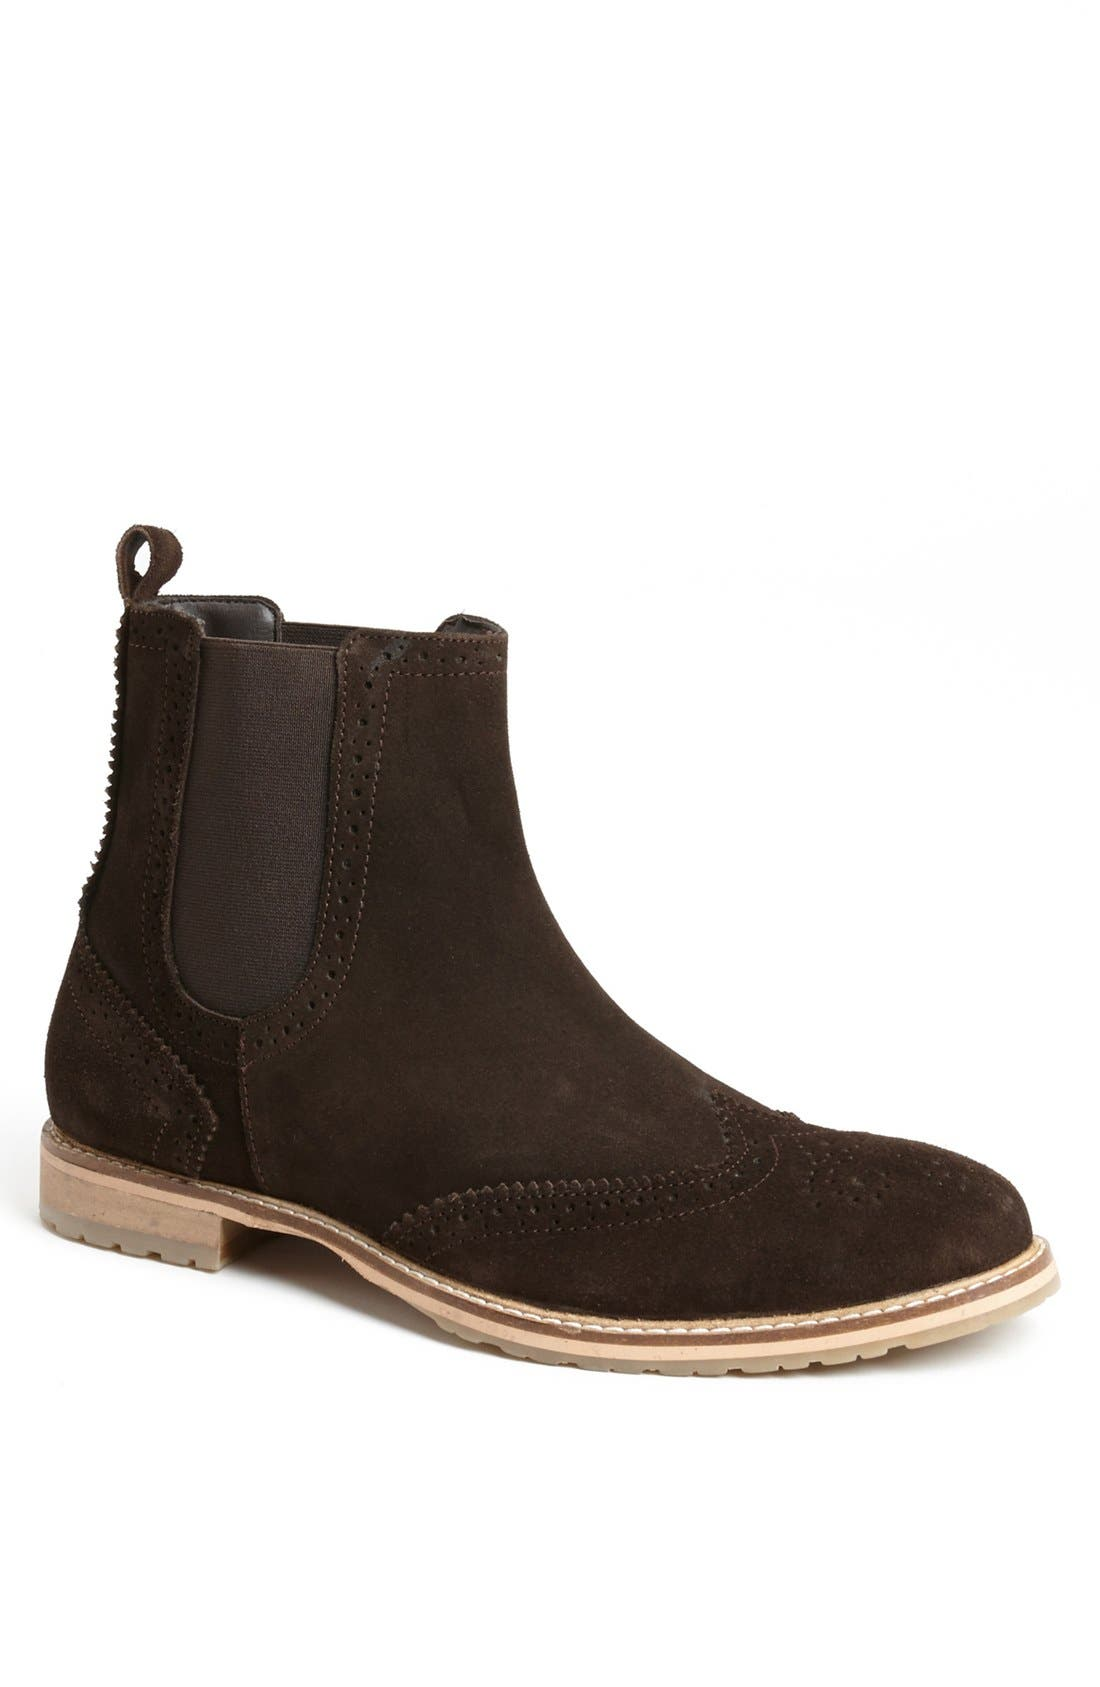 Main Image - Ben Sherman 'Bruno' Wingtip Chelsea Boot (Men)